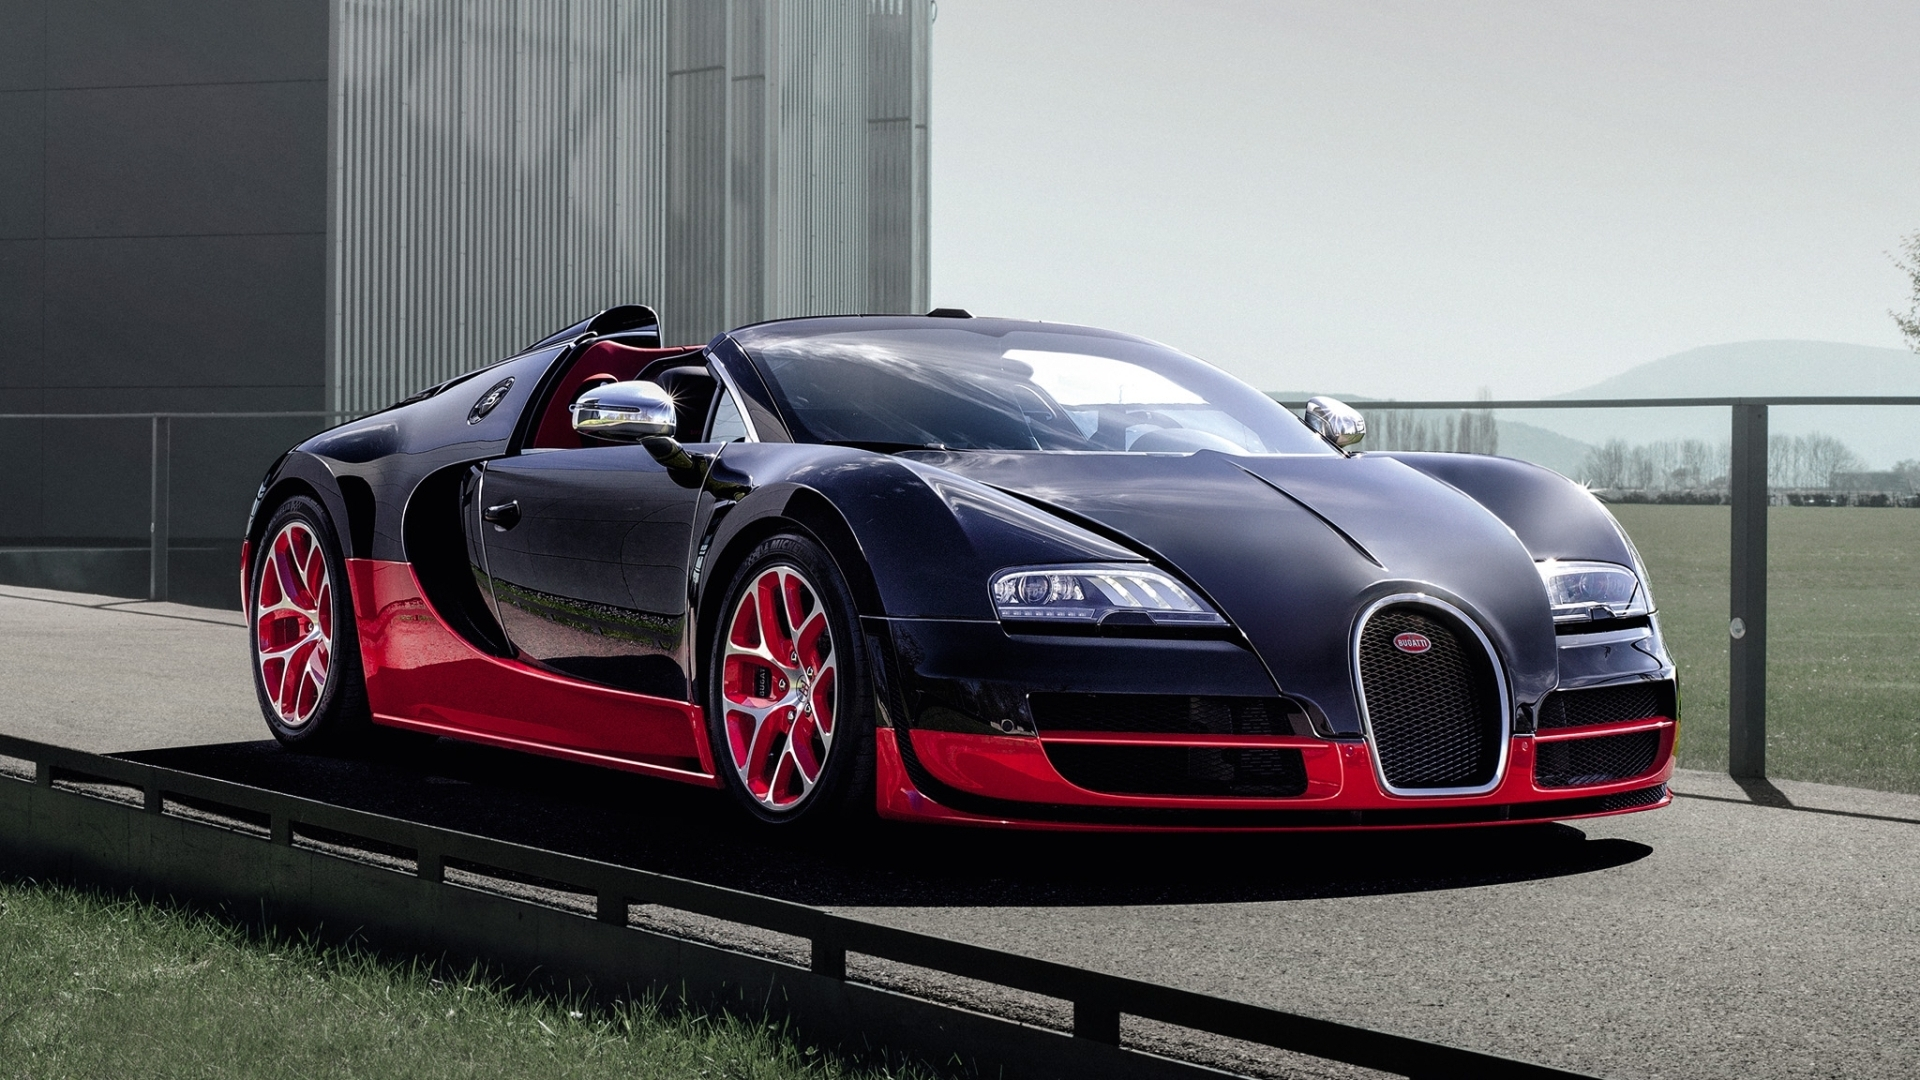 bugatti veyron super sport – uniworld news